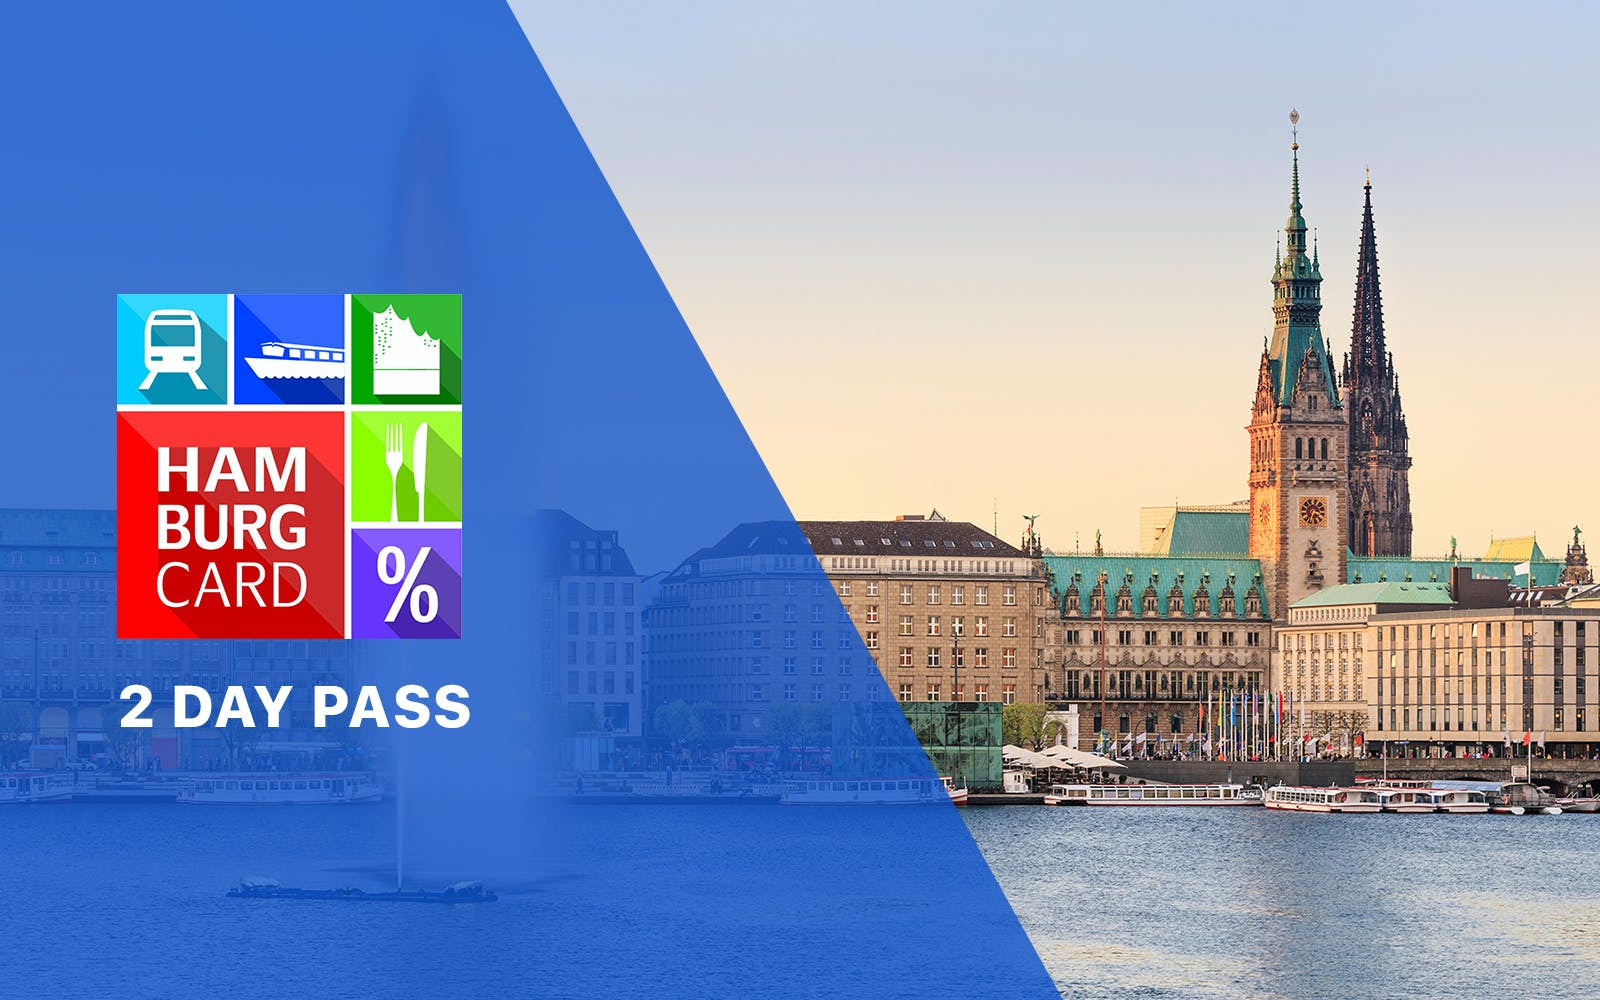 Hamburg Card - 2 day pass